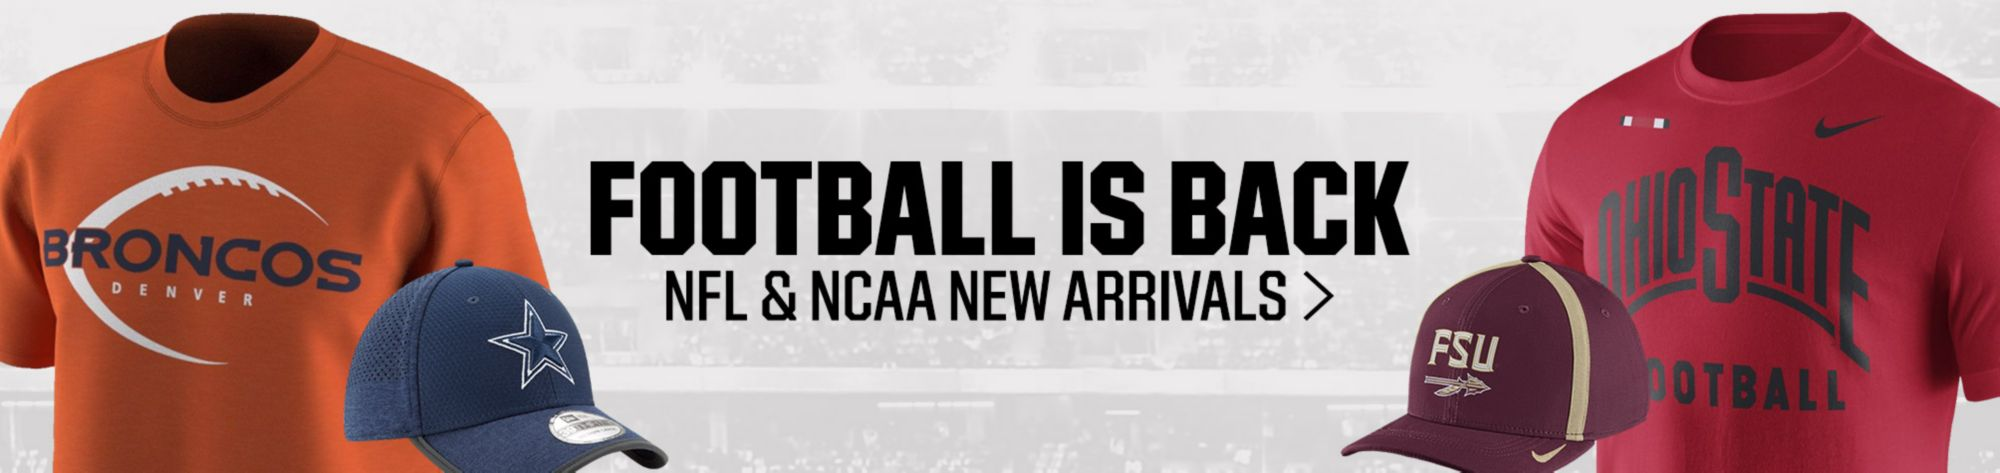 NFL and NCAA New Arrivals